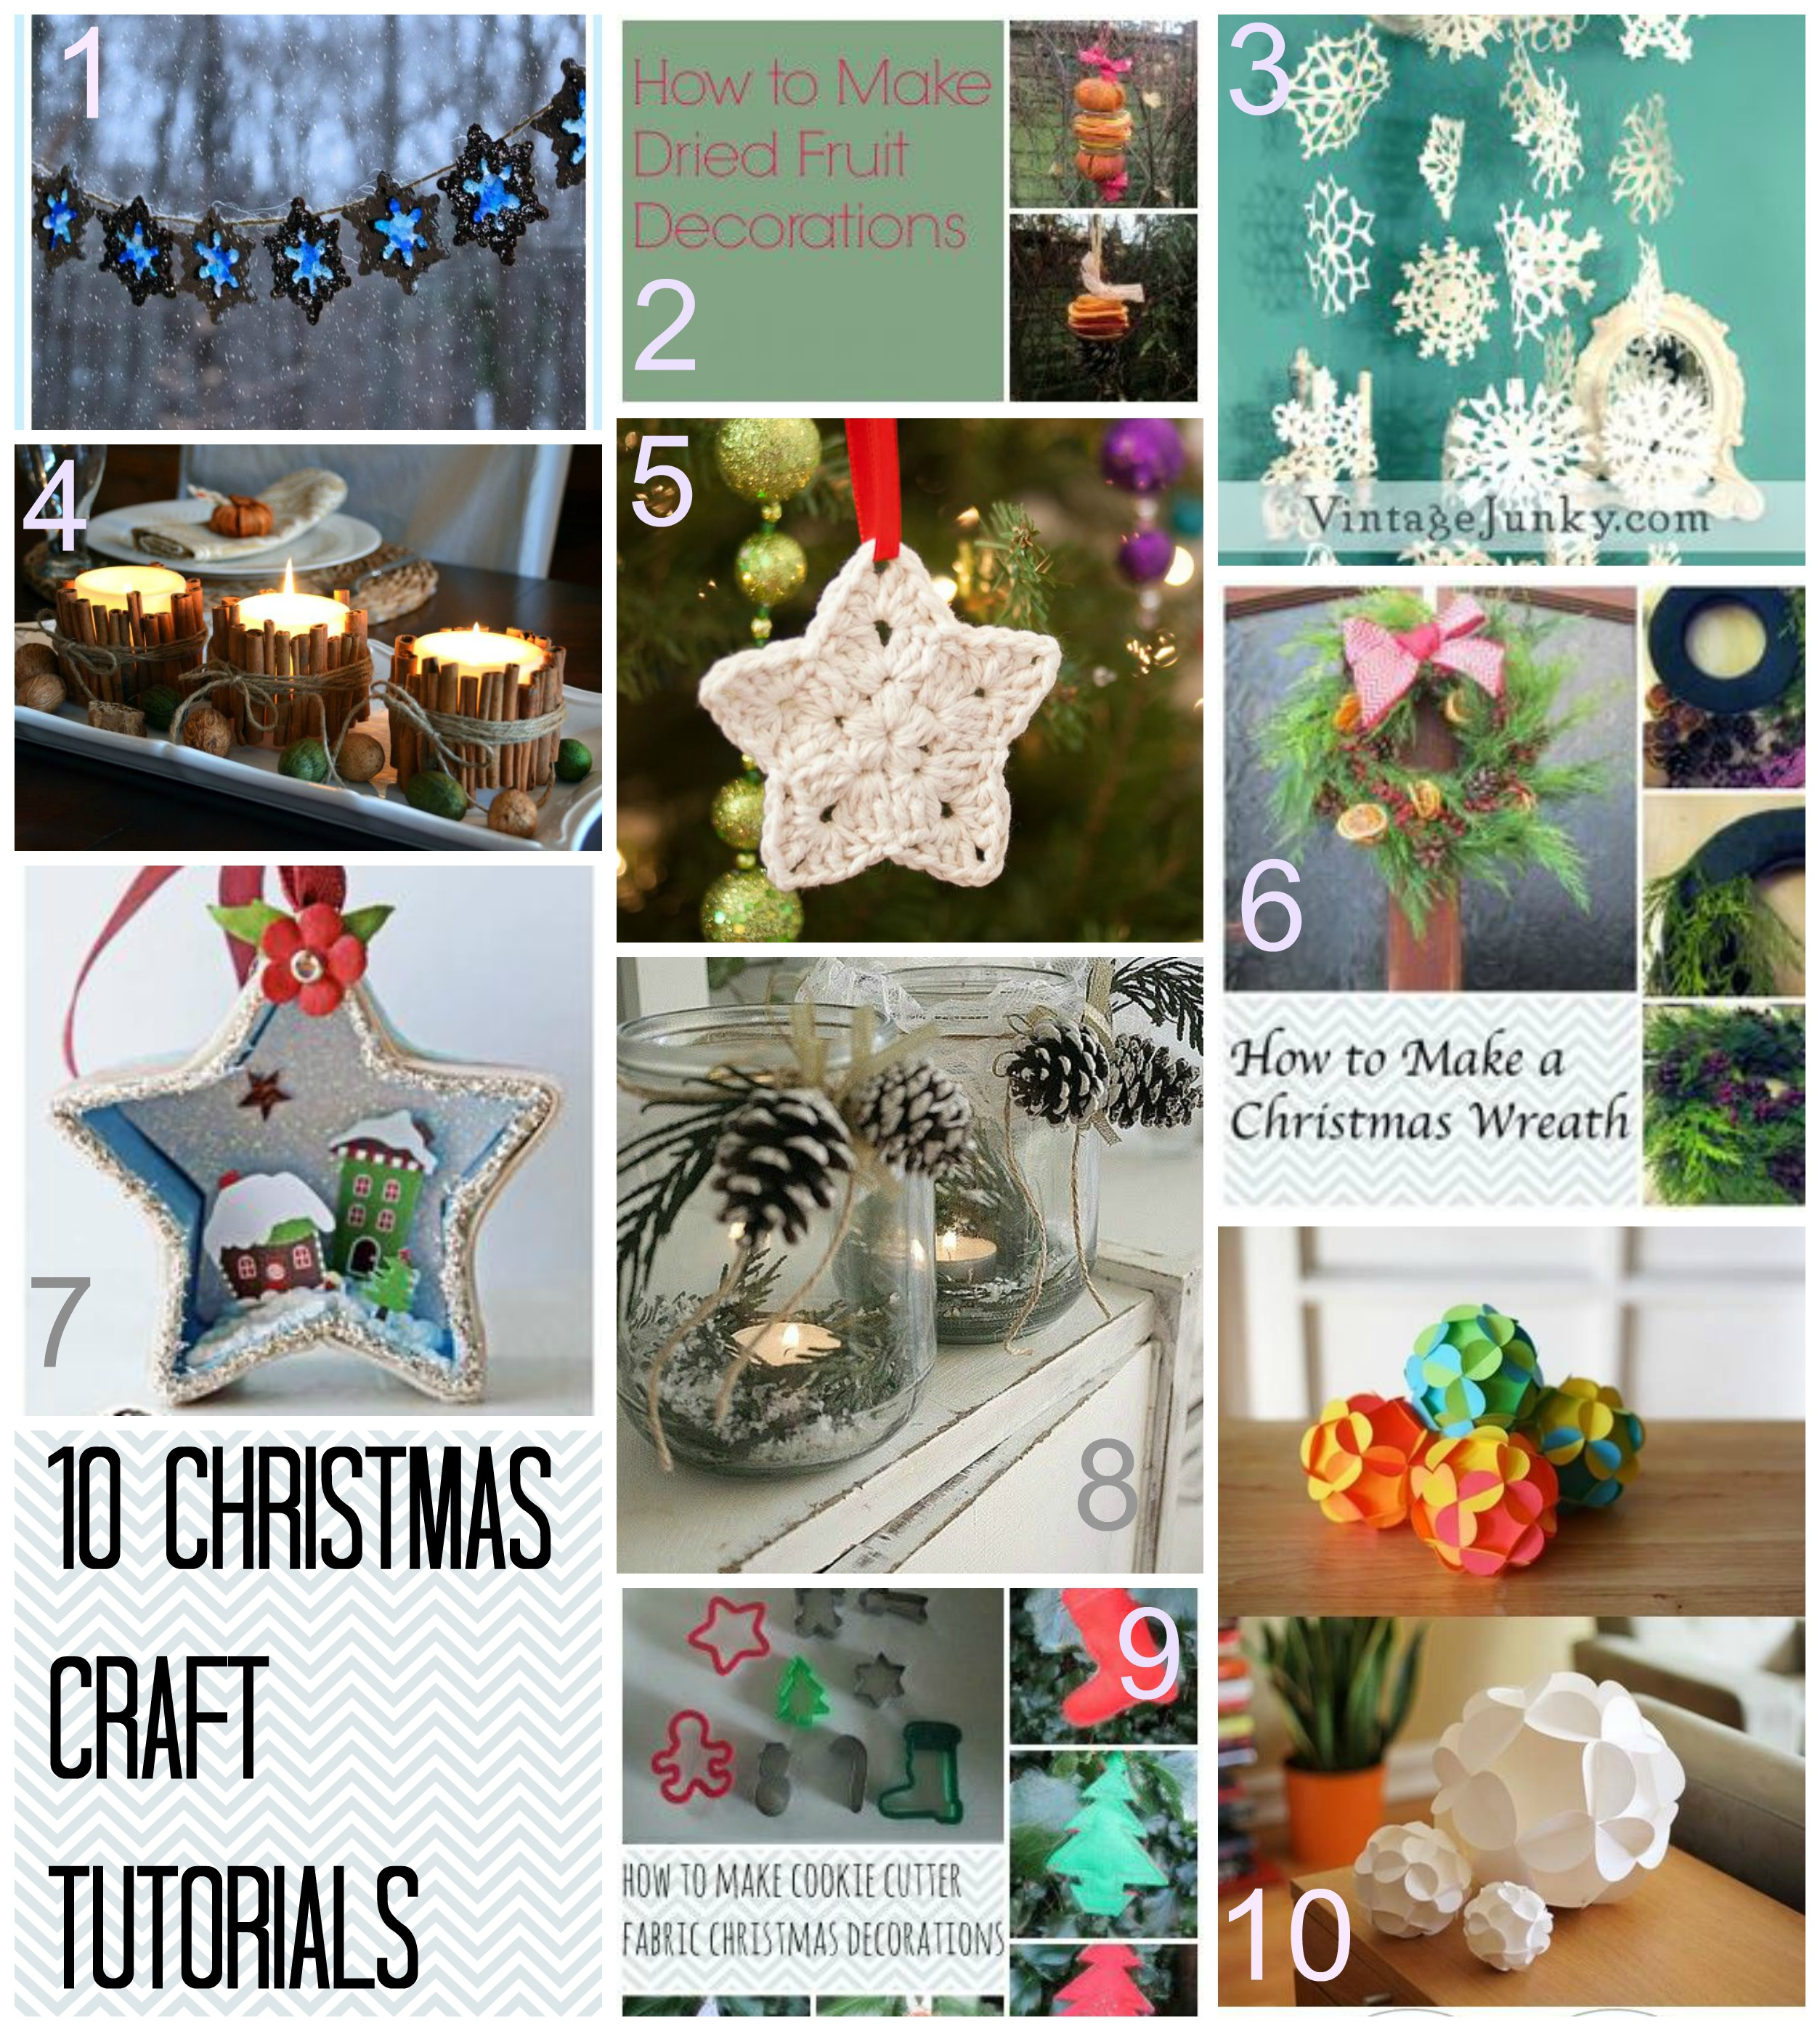 10 Christmas craft tutorials